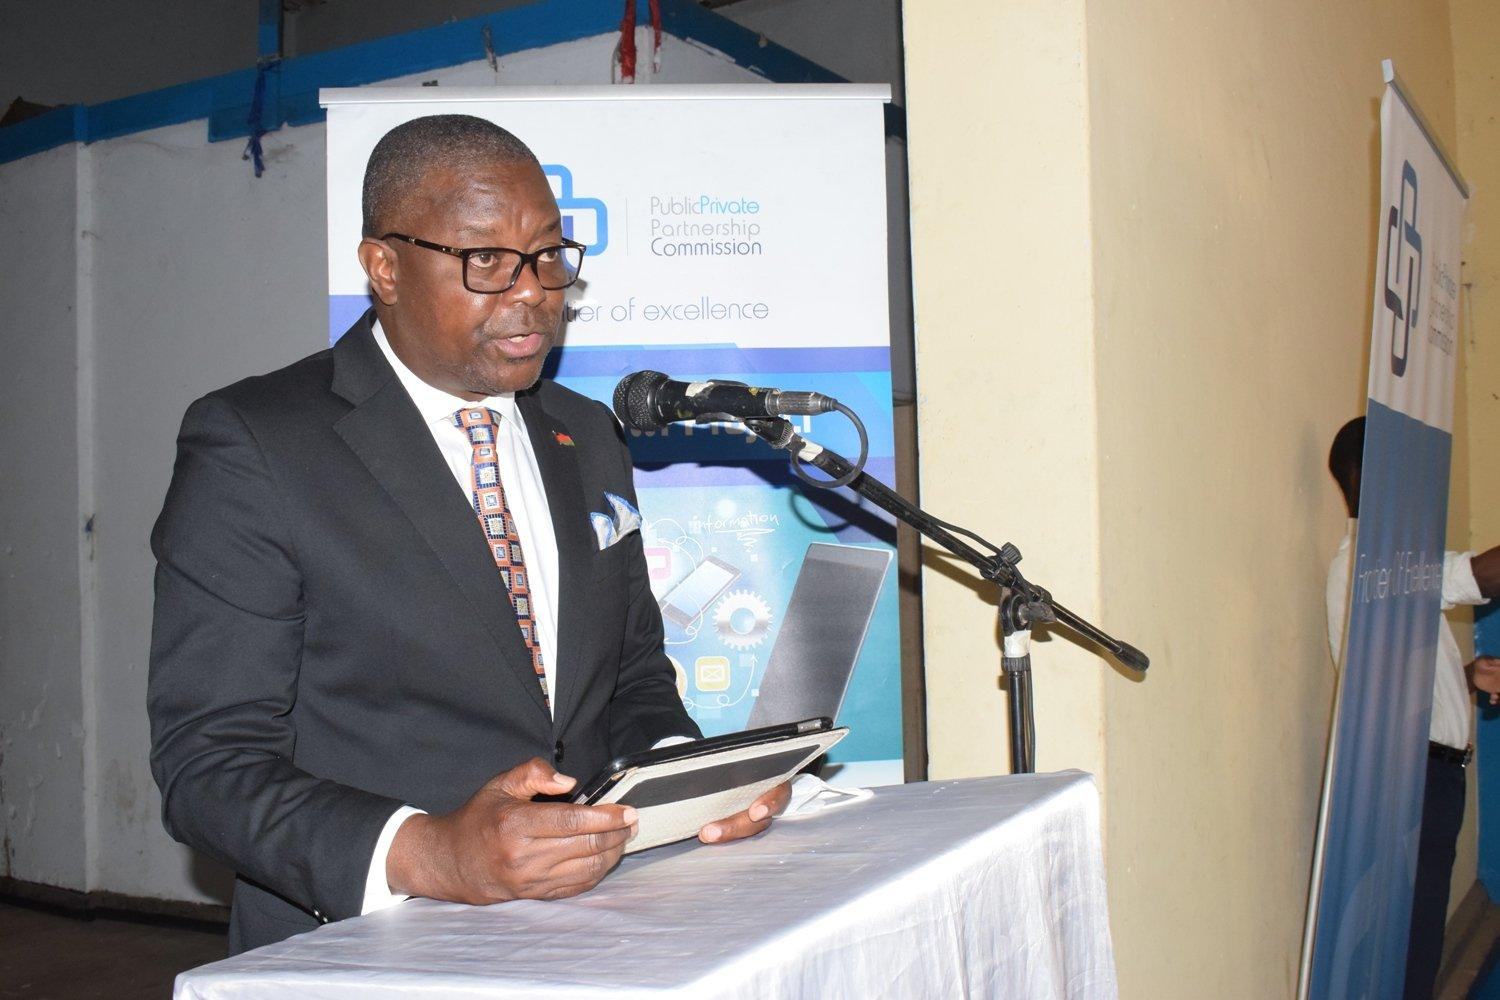 Free public Wi-Fi initiative rolled out, Kazako says e-service delivery critical to growth